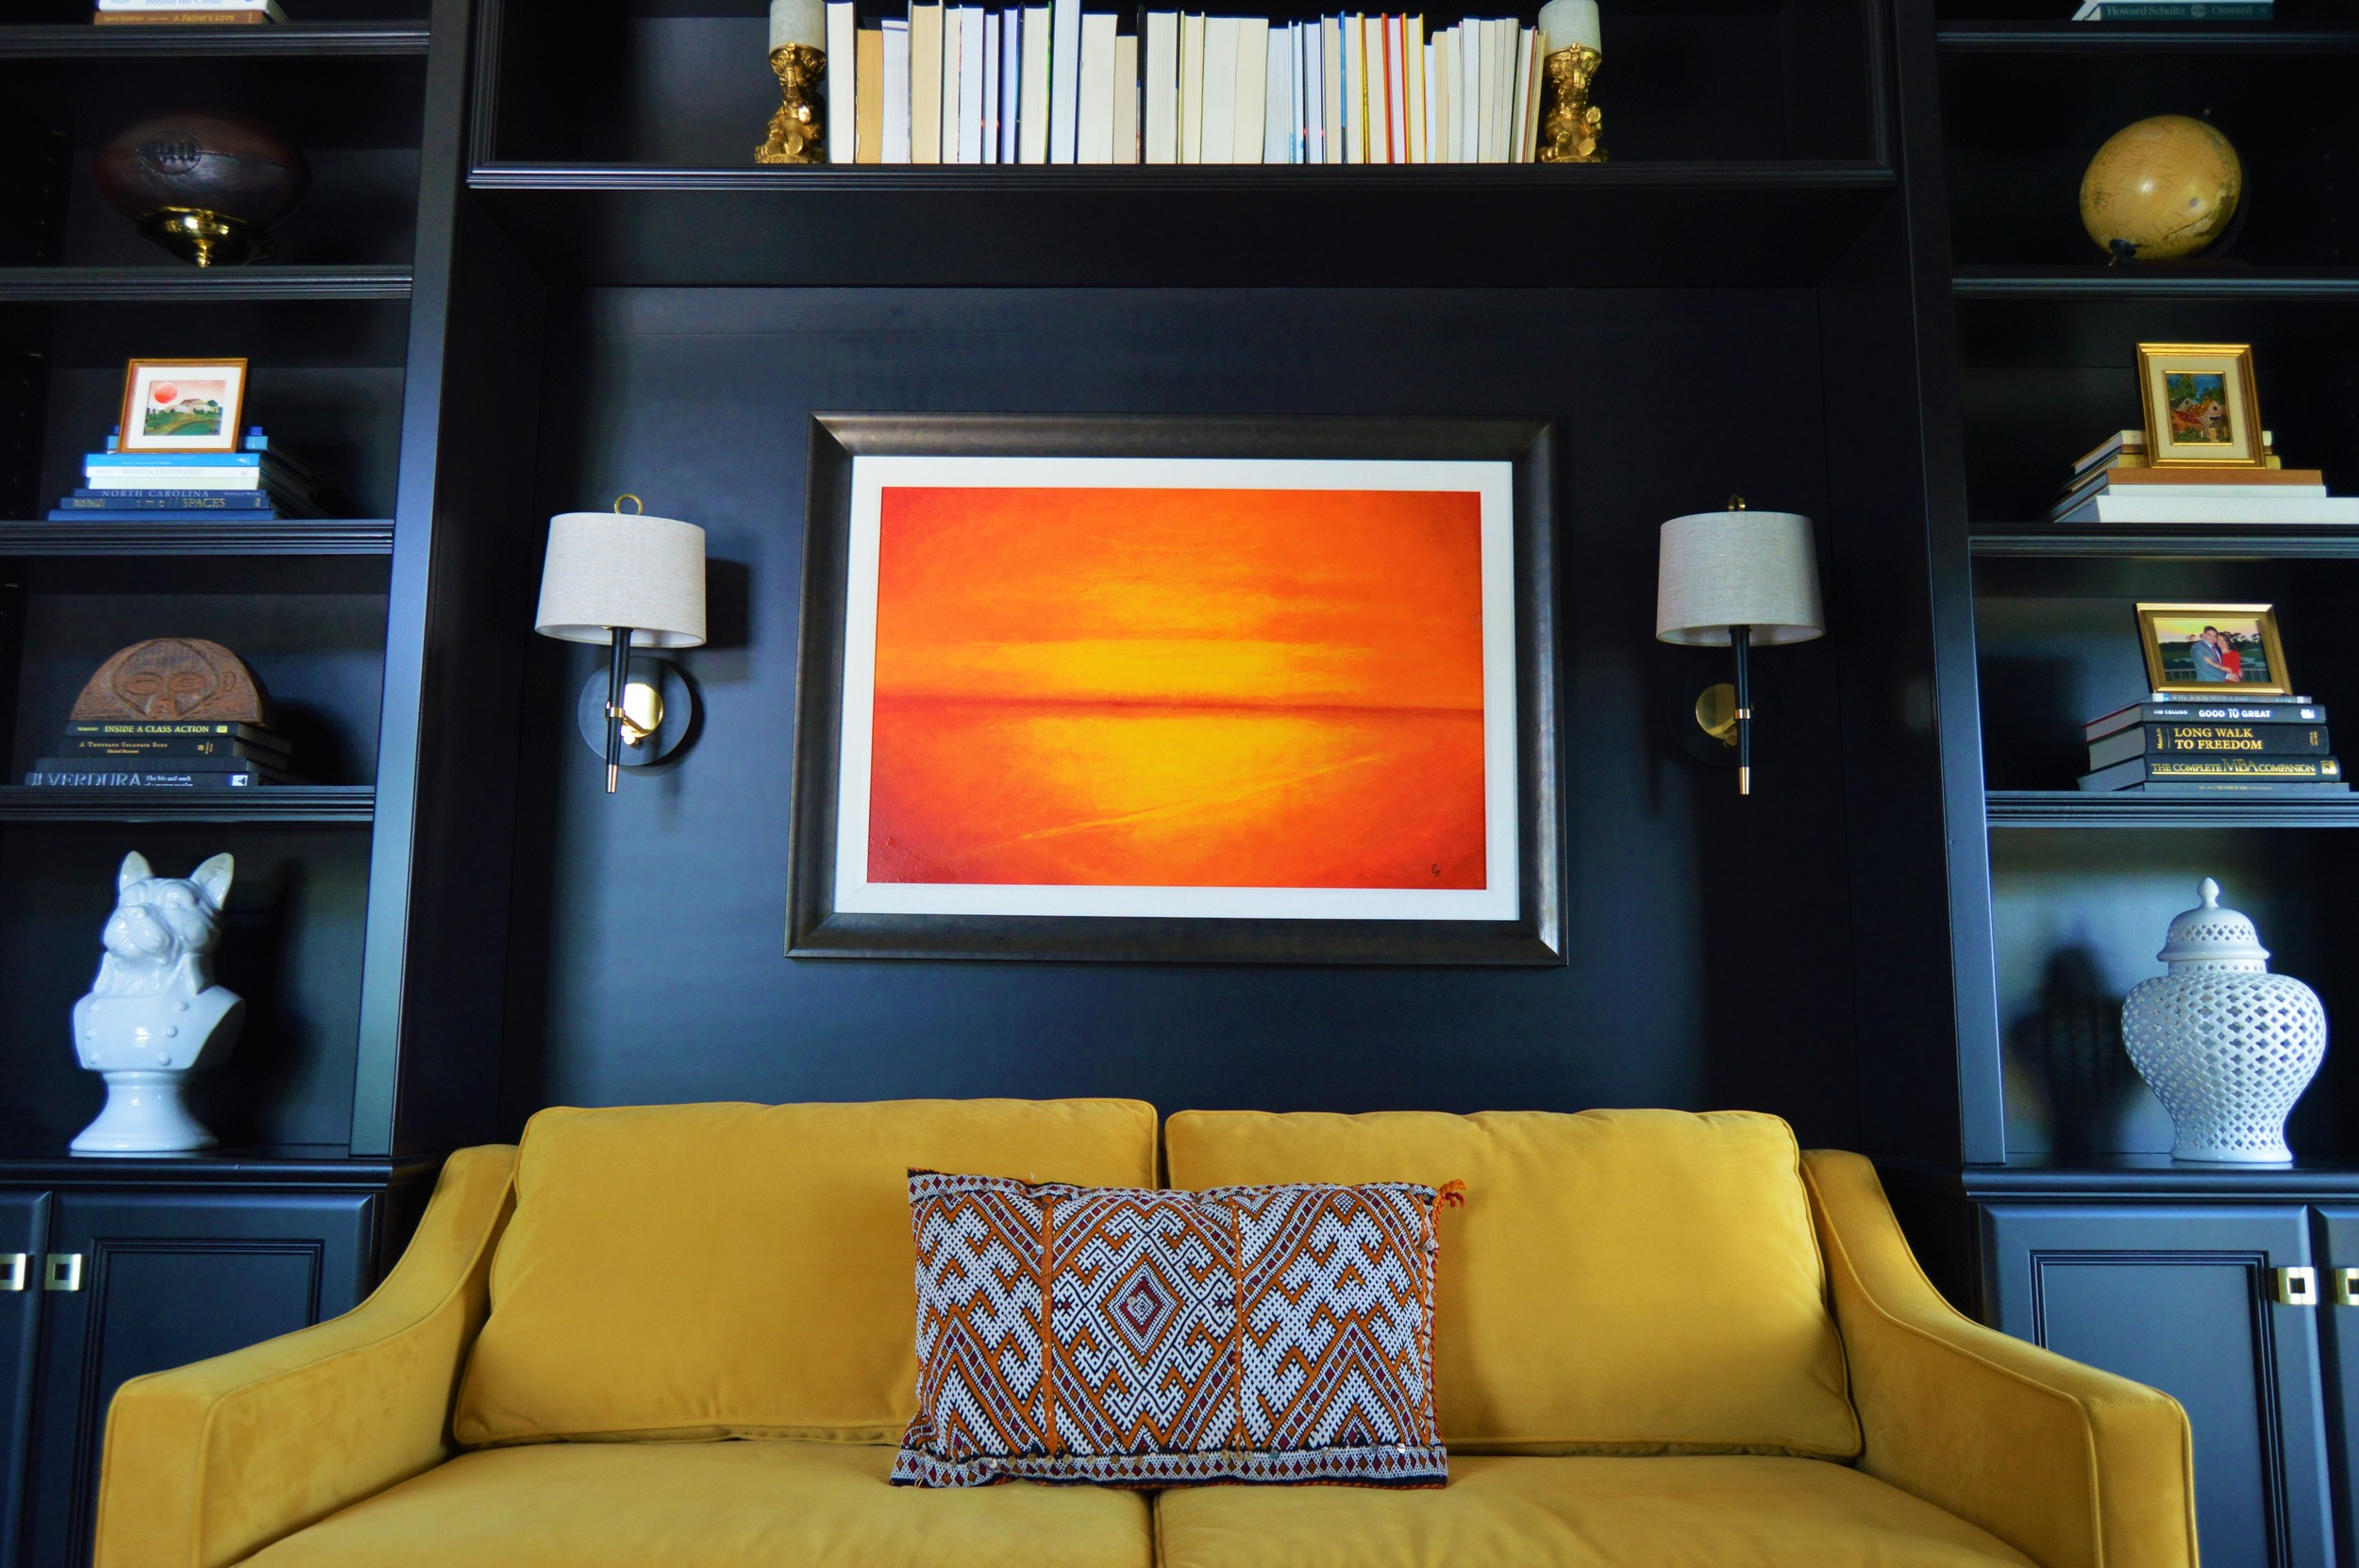 Custom cabinetry designed by Chloe Joelle Beautiful Living. Couch is from West Elm. Jonathan Adler sconces. Original art. Pillow sourced from Marrakech Souk.